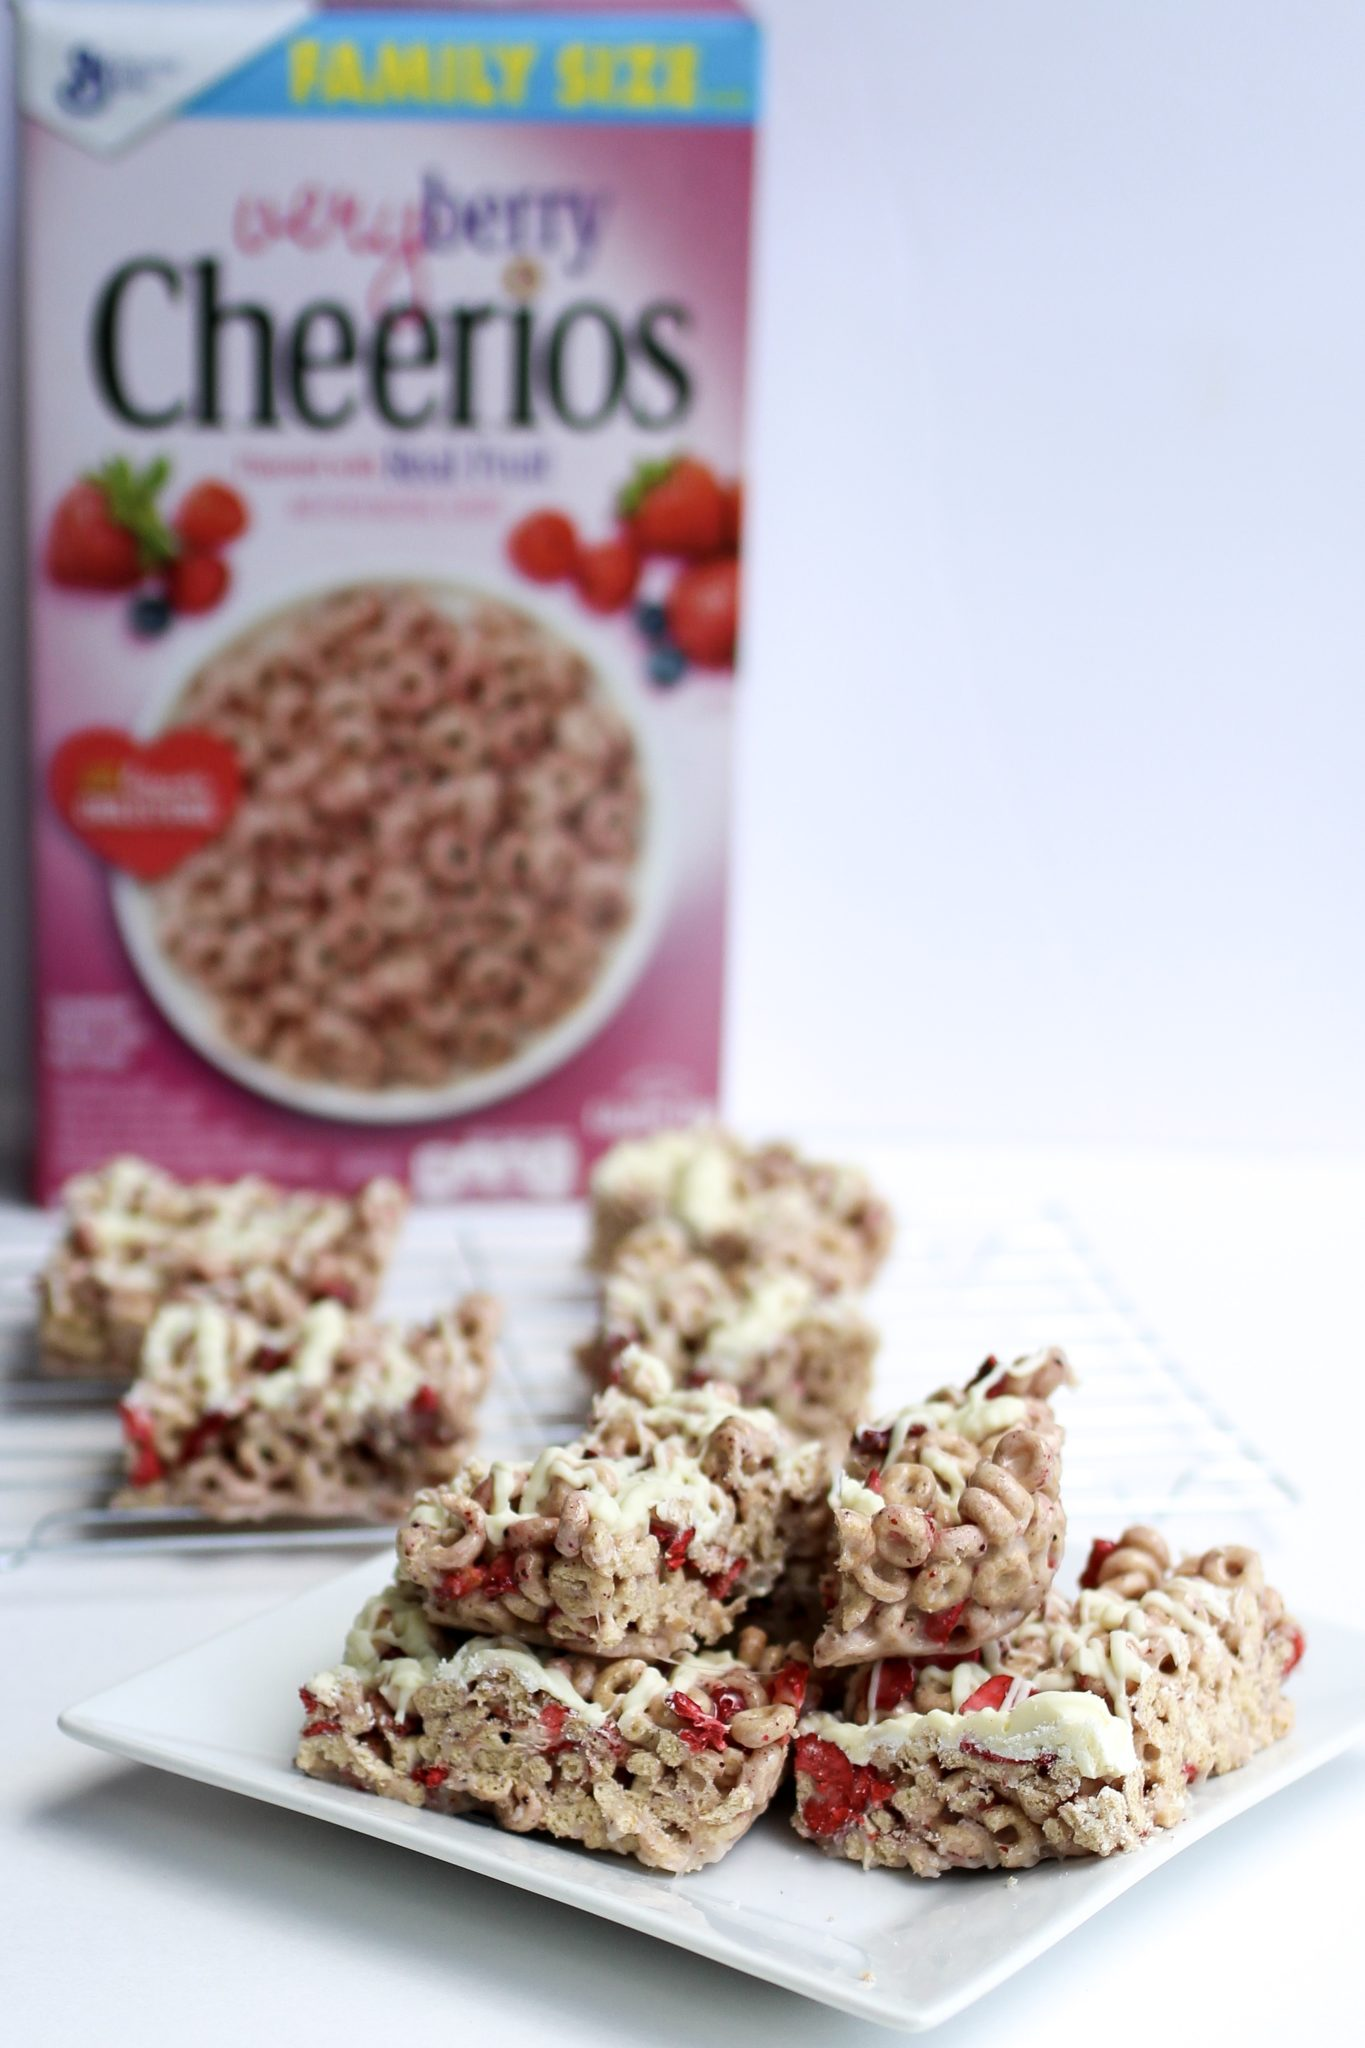 quick and easy breakfast ideas for back to school, Cheerios, homemade peanut butter granola, yogurt parfaits with Cheerios, homemade strawberry cereal bars, kid friendly sushi with banana peanut butter and Cheerios